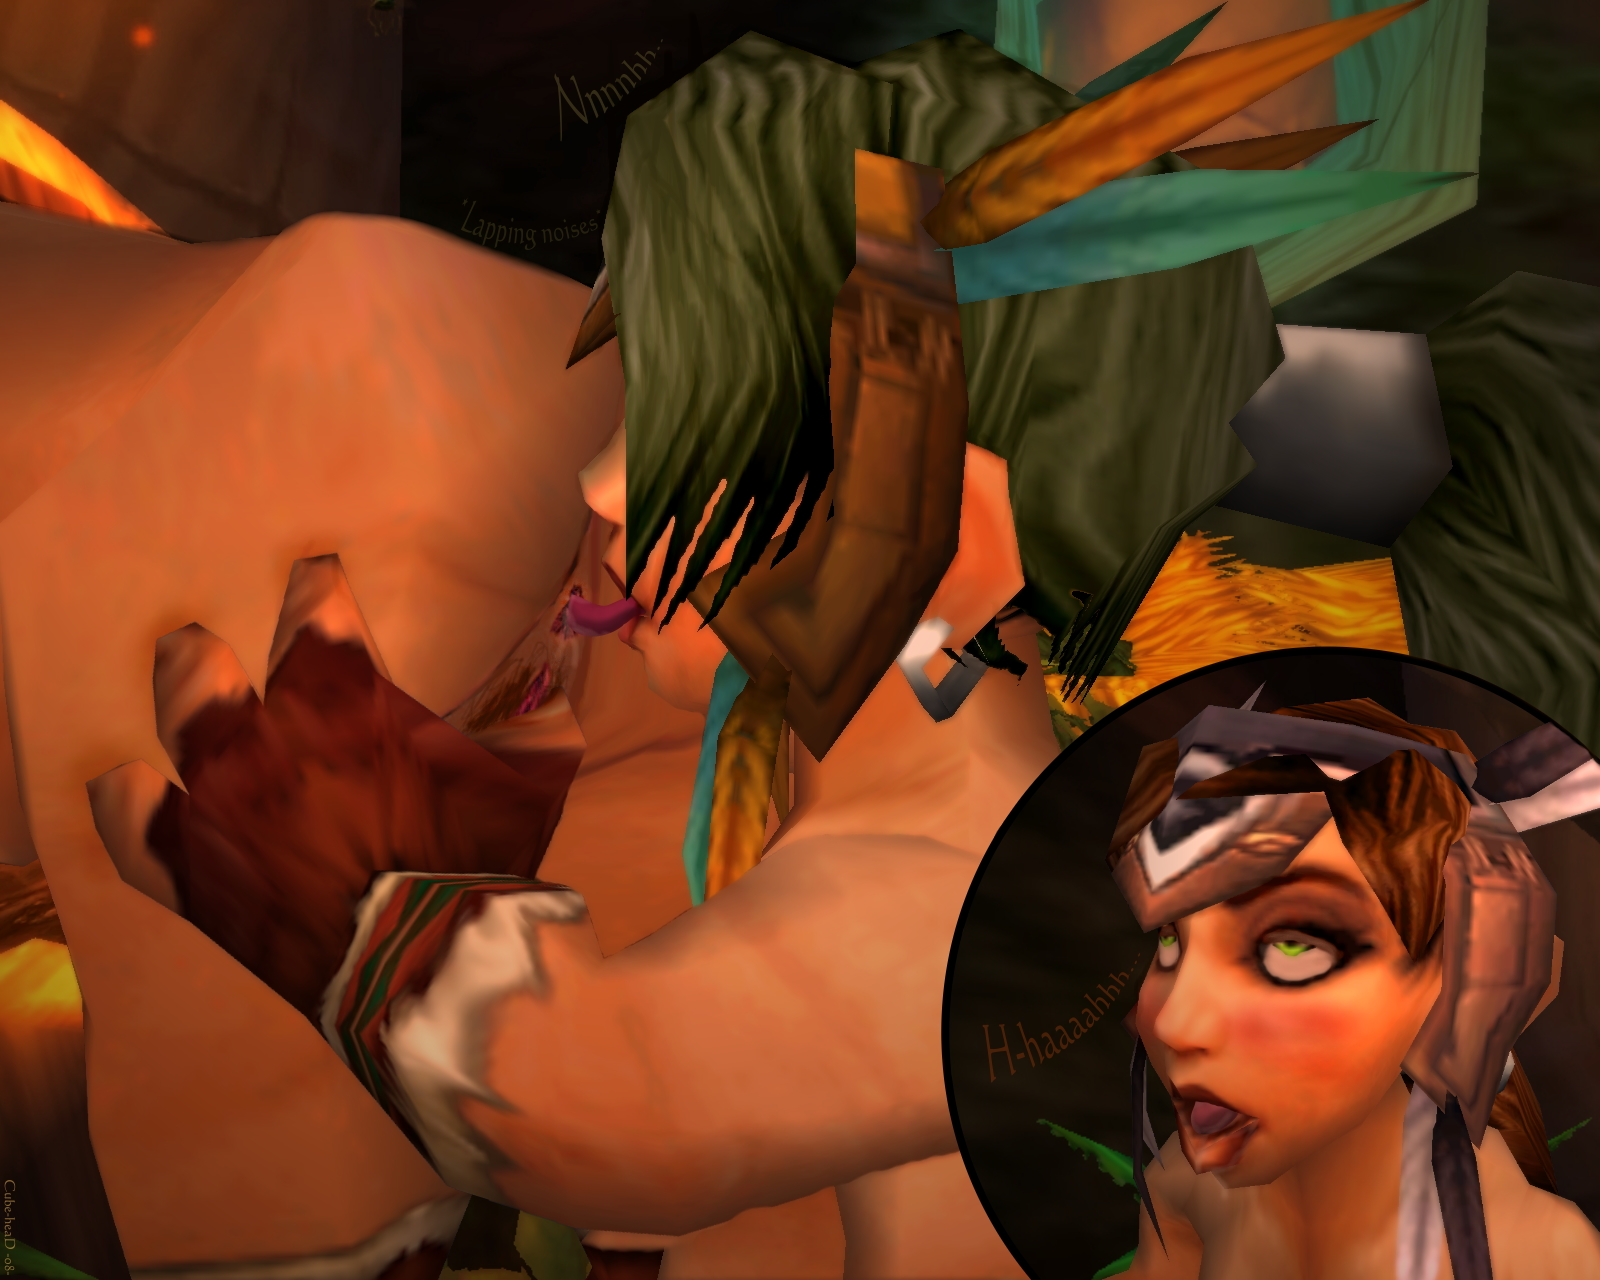 World of warcraft shi erotic pictures